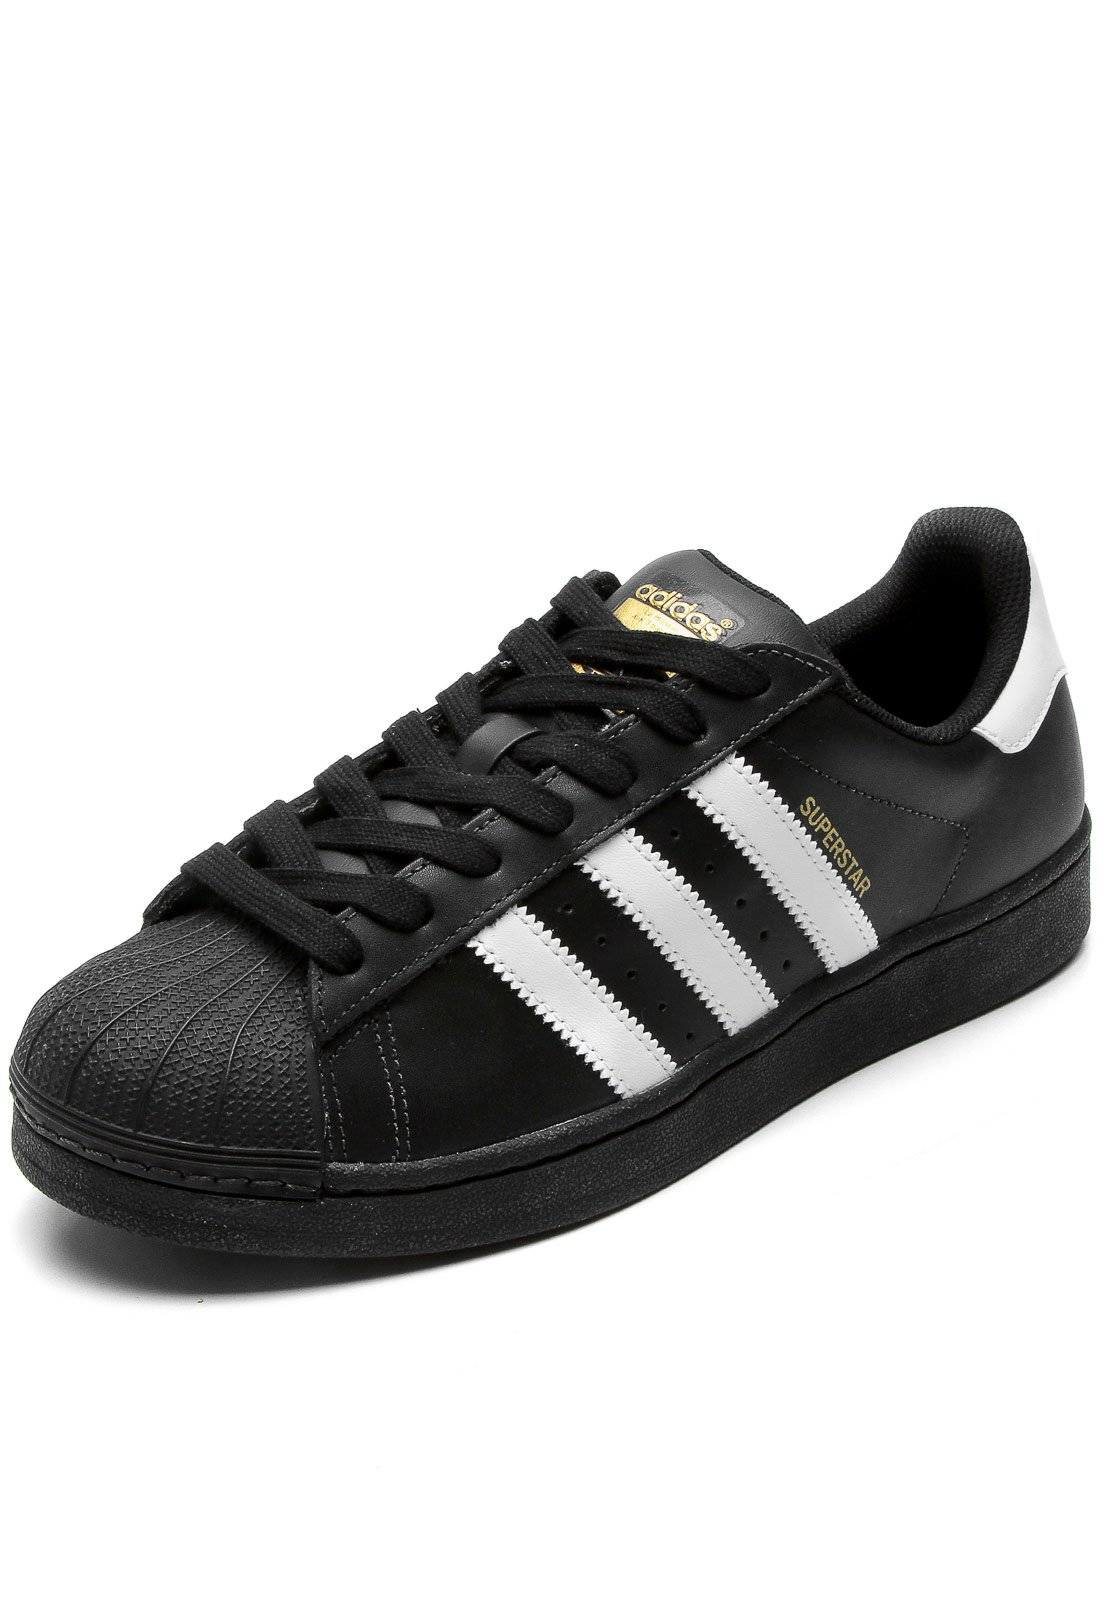 15f10fb3fca Tênis adidas Originals Superstar Foundation Preto - Compre Agora ...